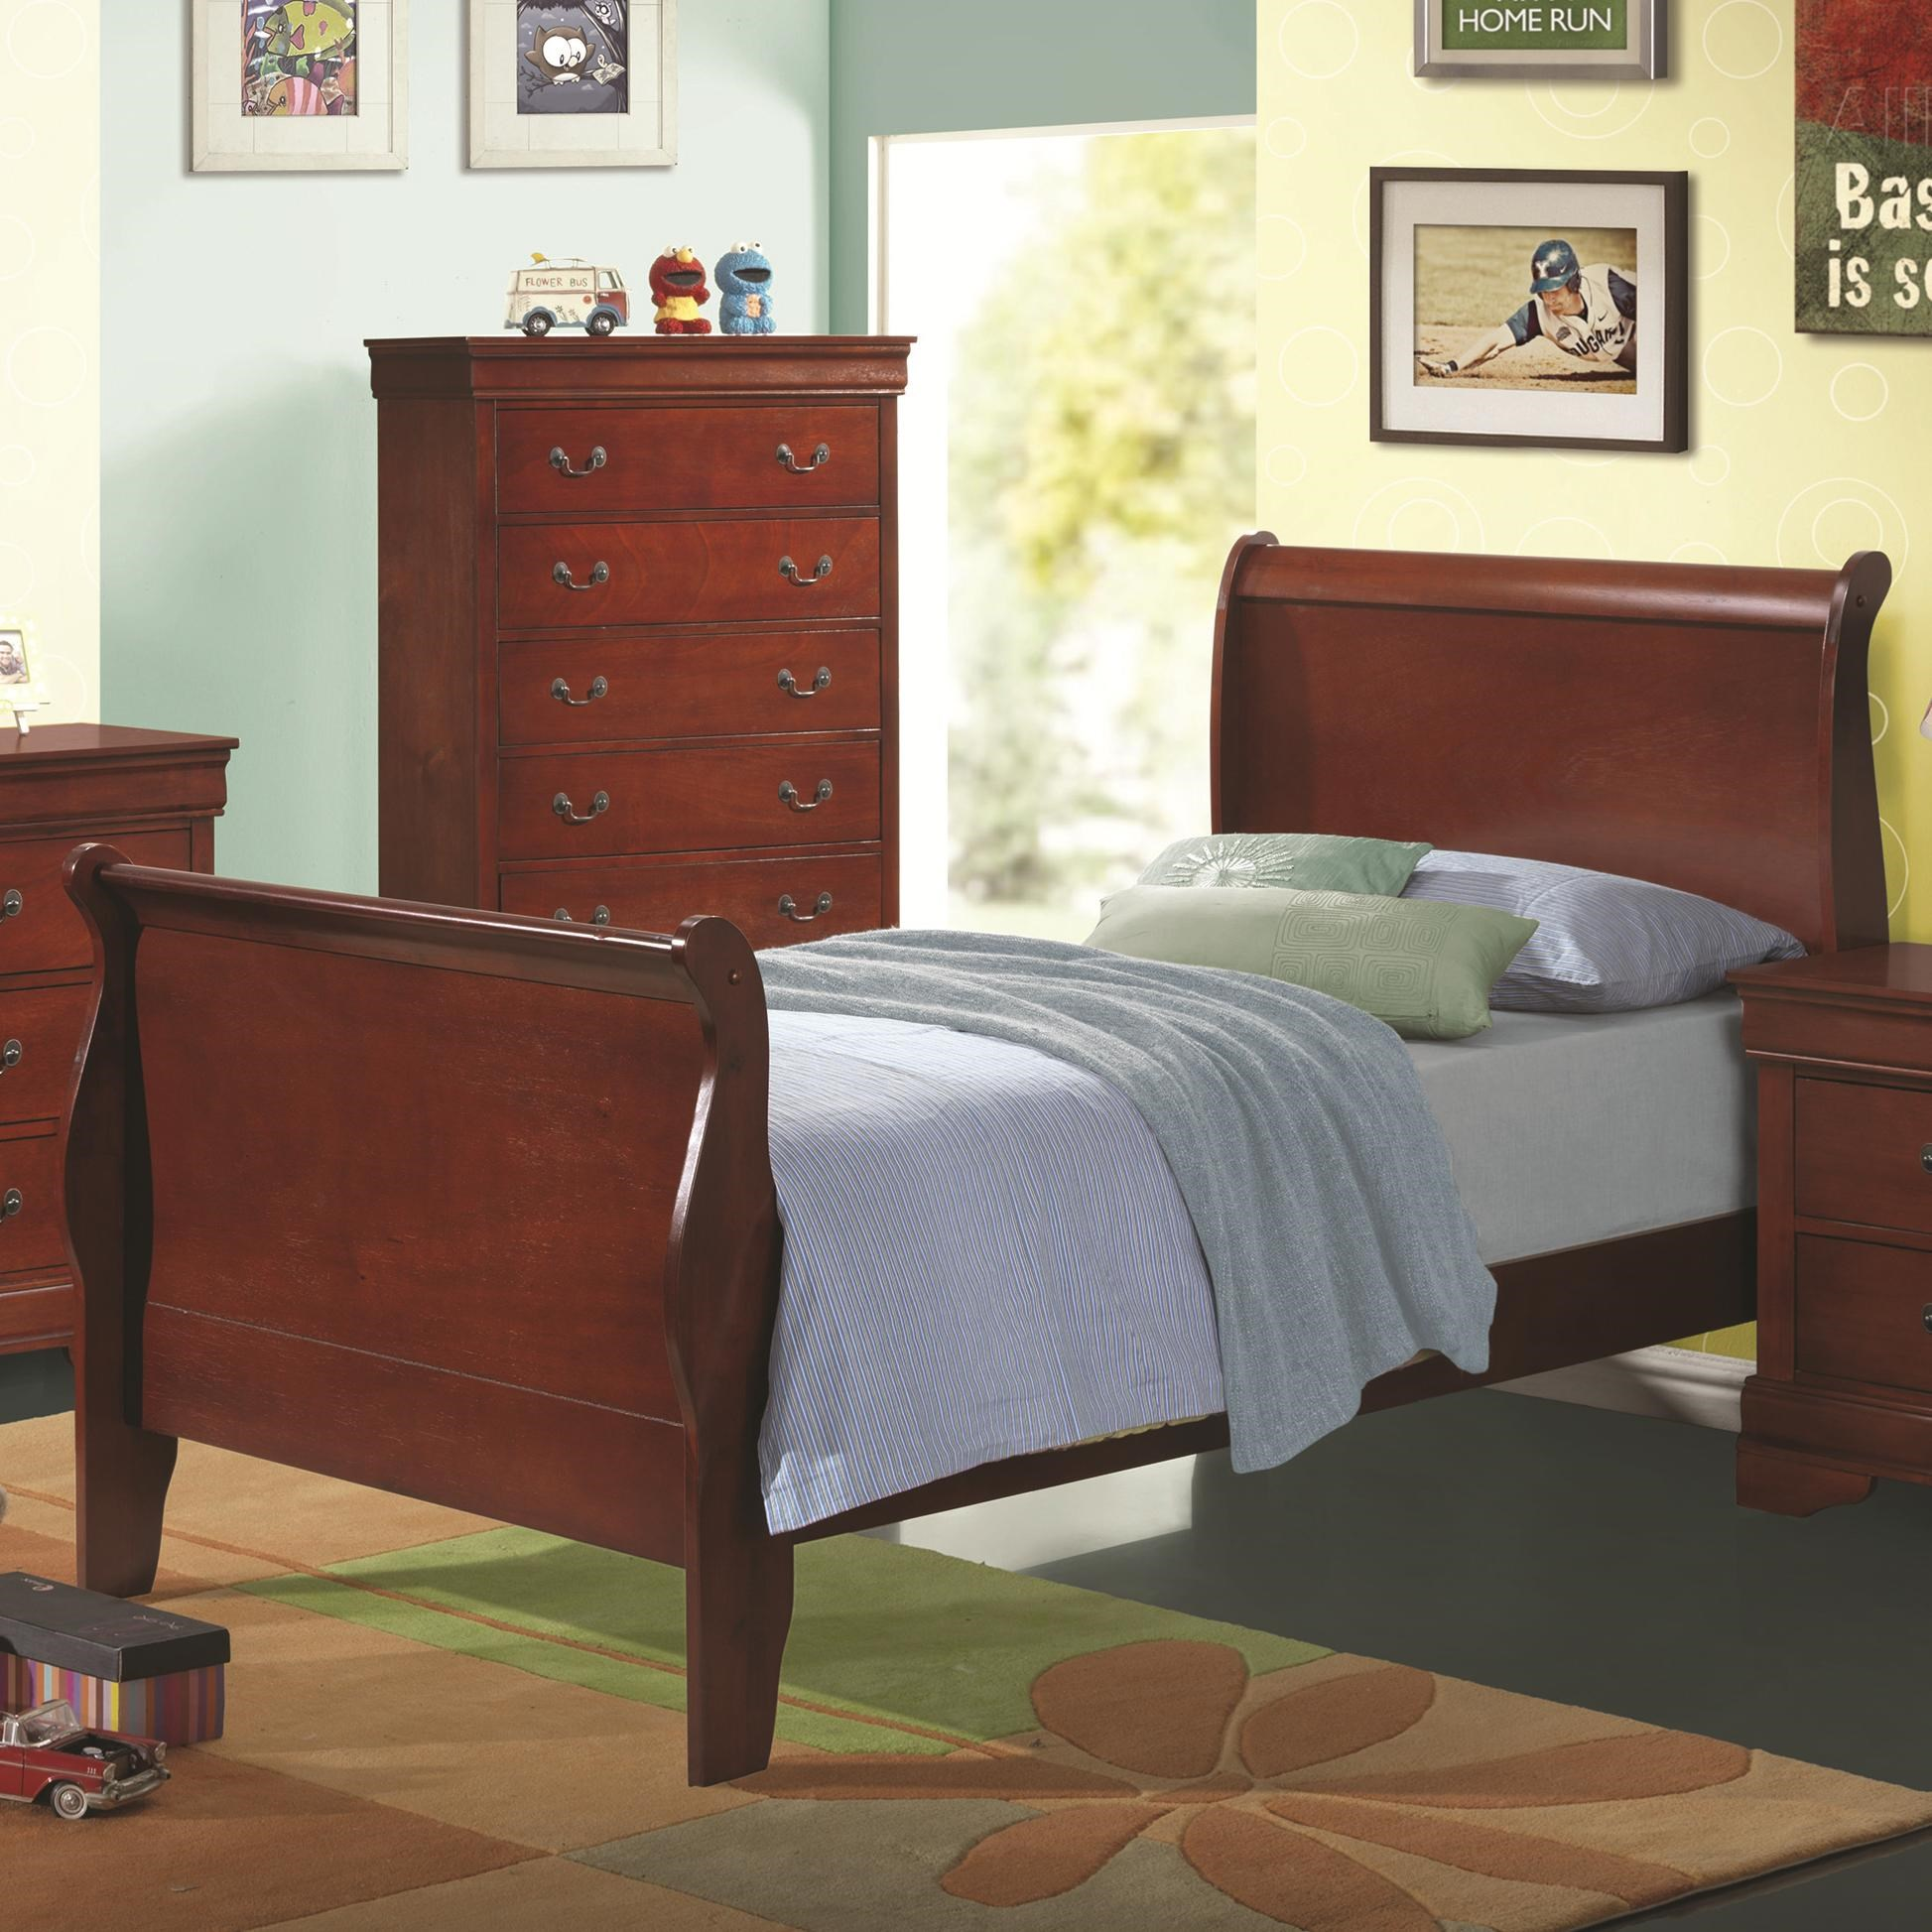 bed shown may not represent size indicated - Twin Sleigh Bed